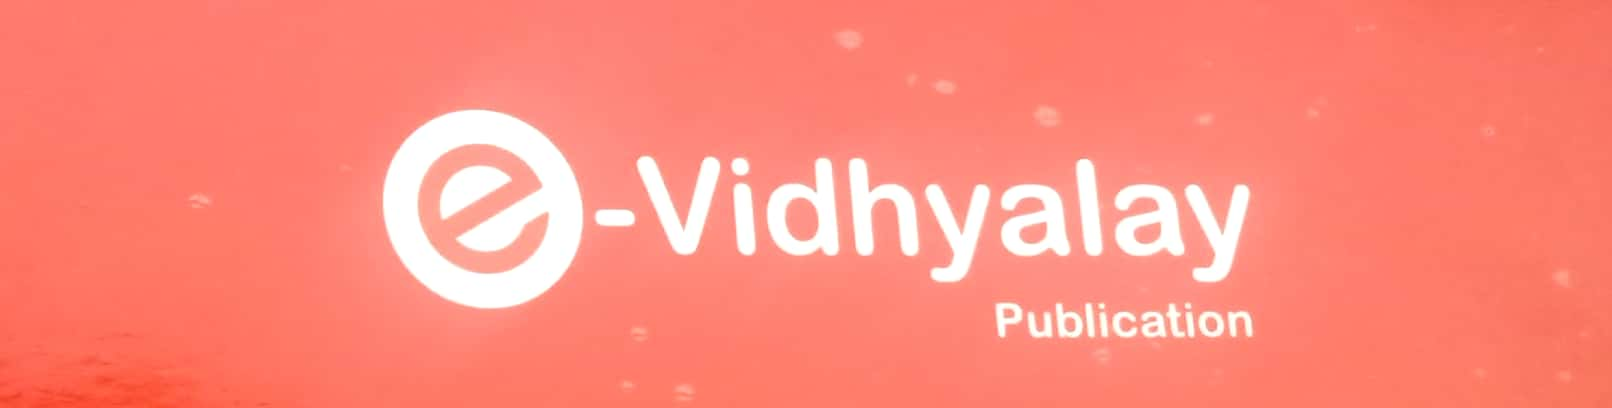 E-Vidhyalay publication